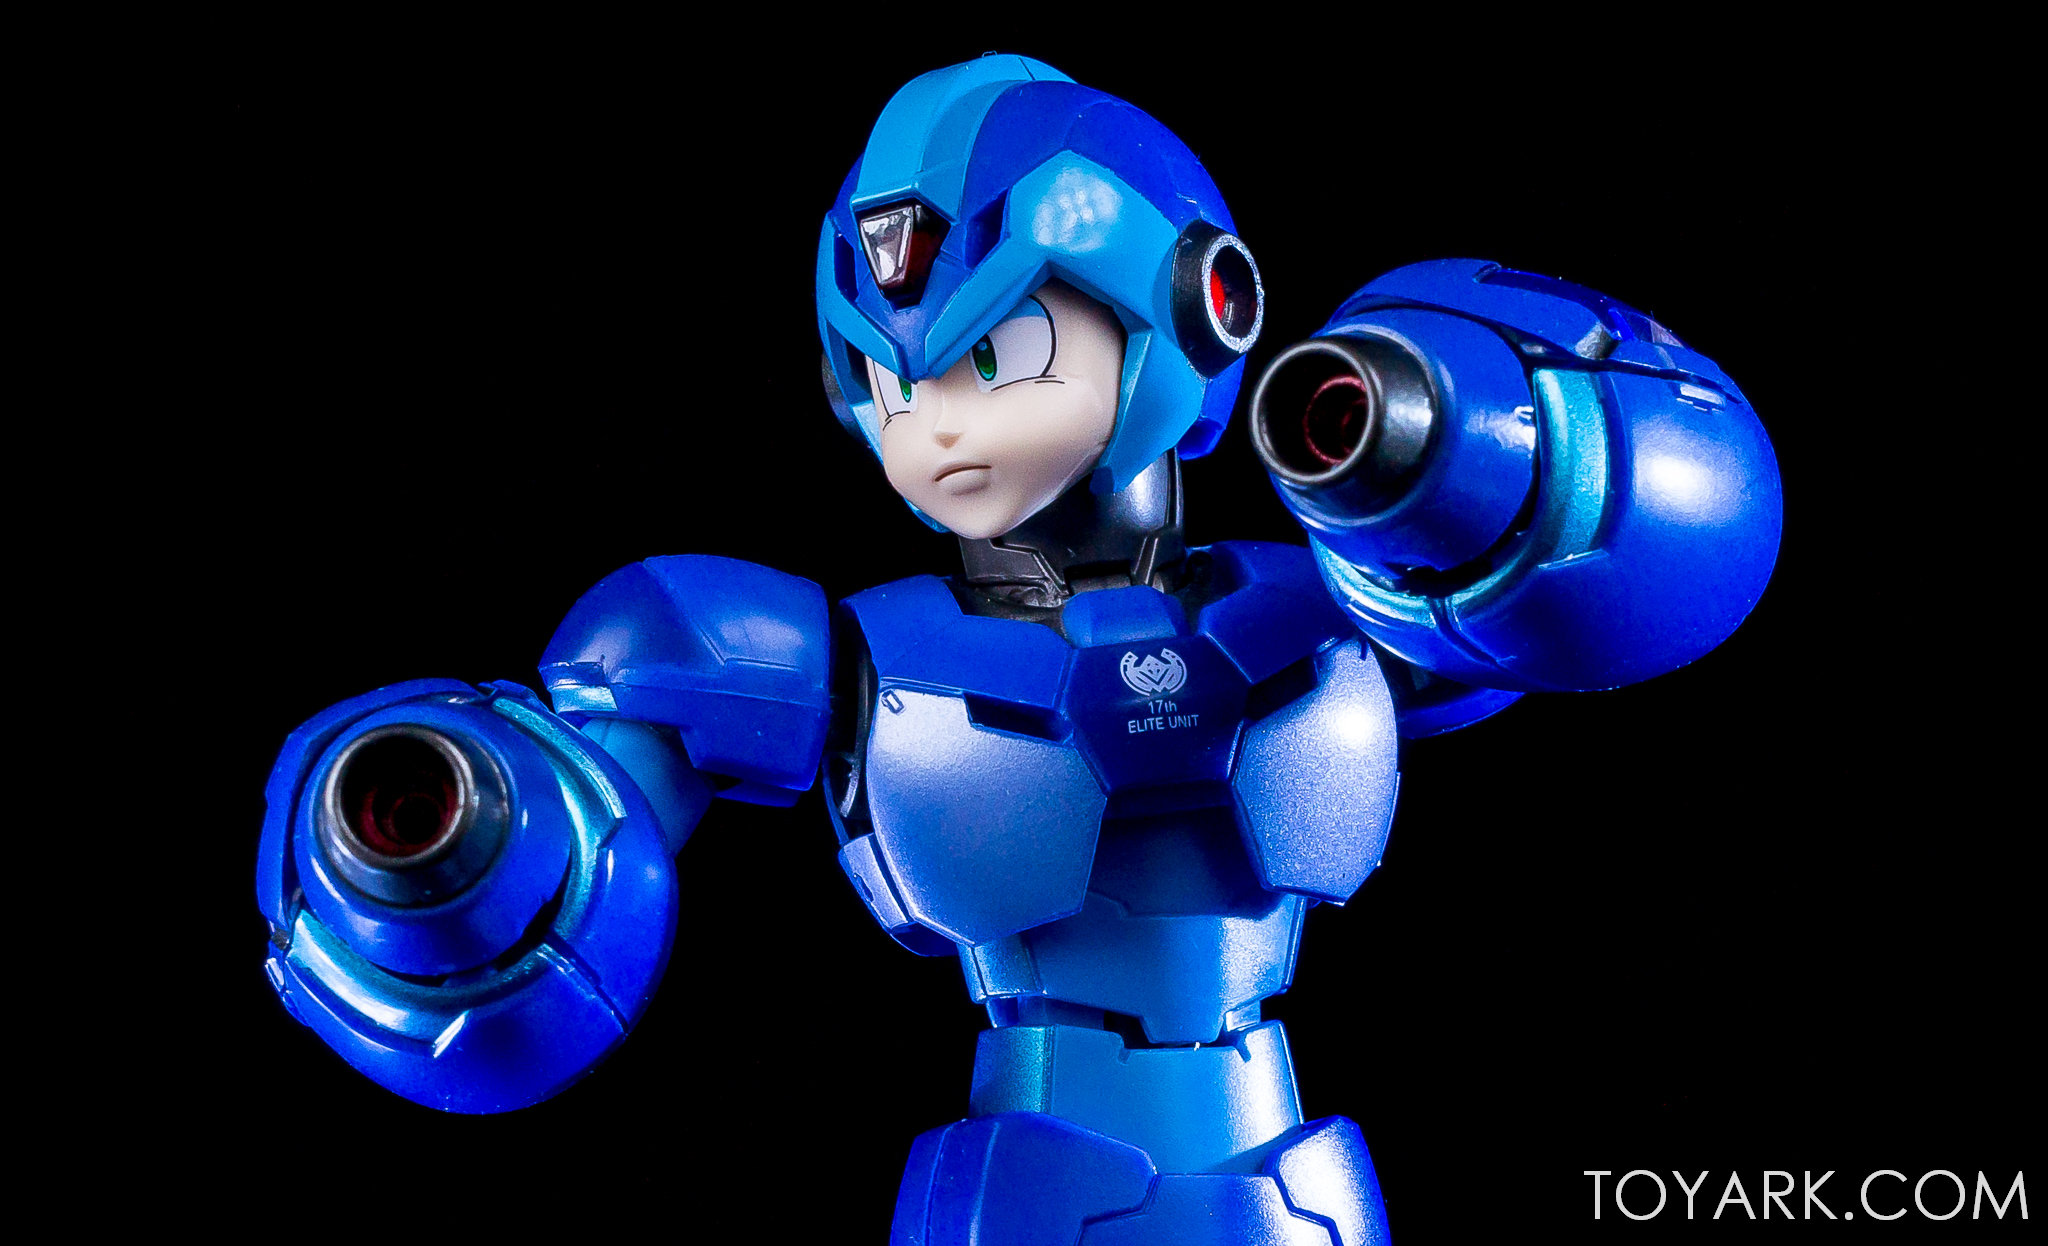 http://news.toyark.com/wp-content/uploads/sites/4/2018/01/Mega-Man-X-Giga-Armor-00044.jpg